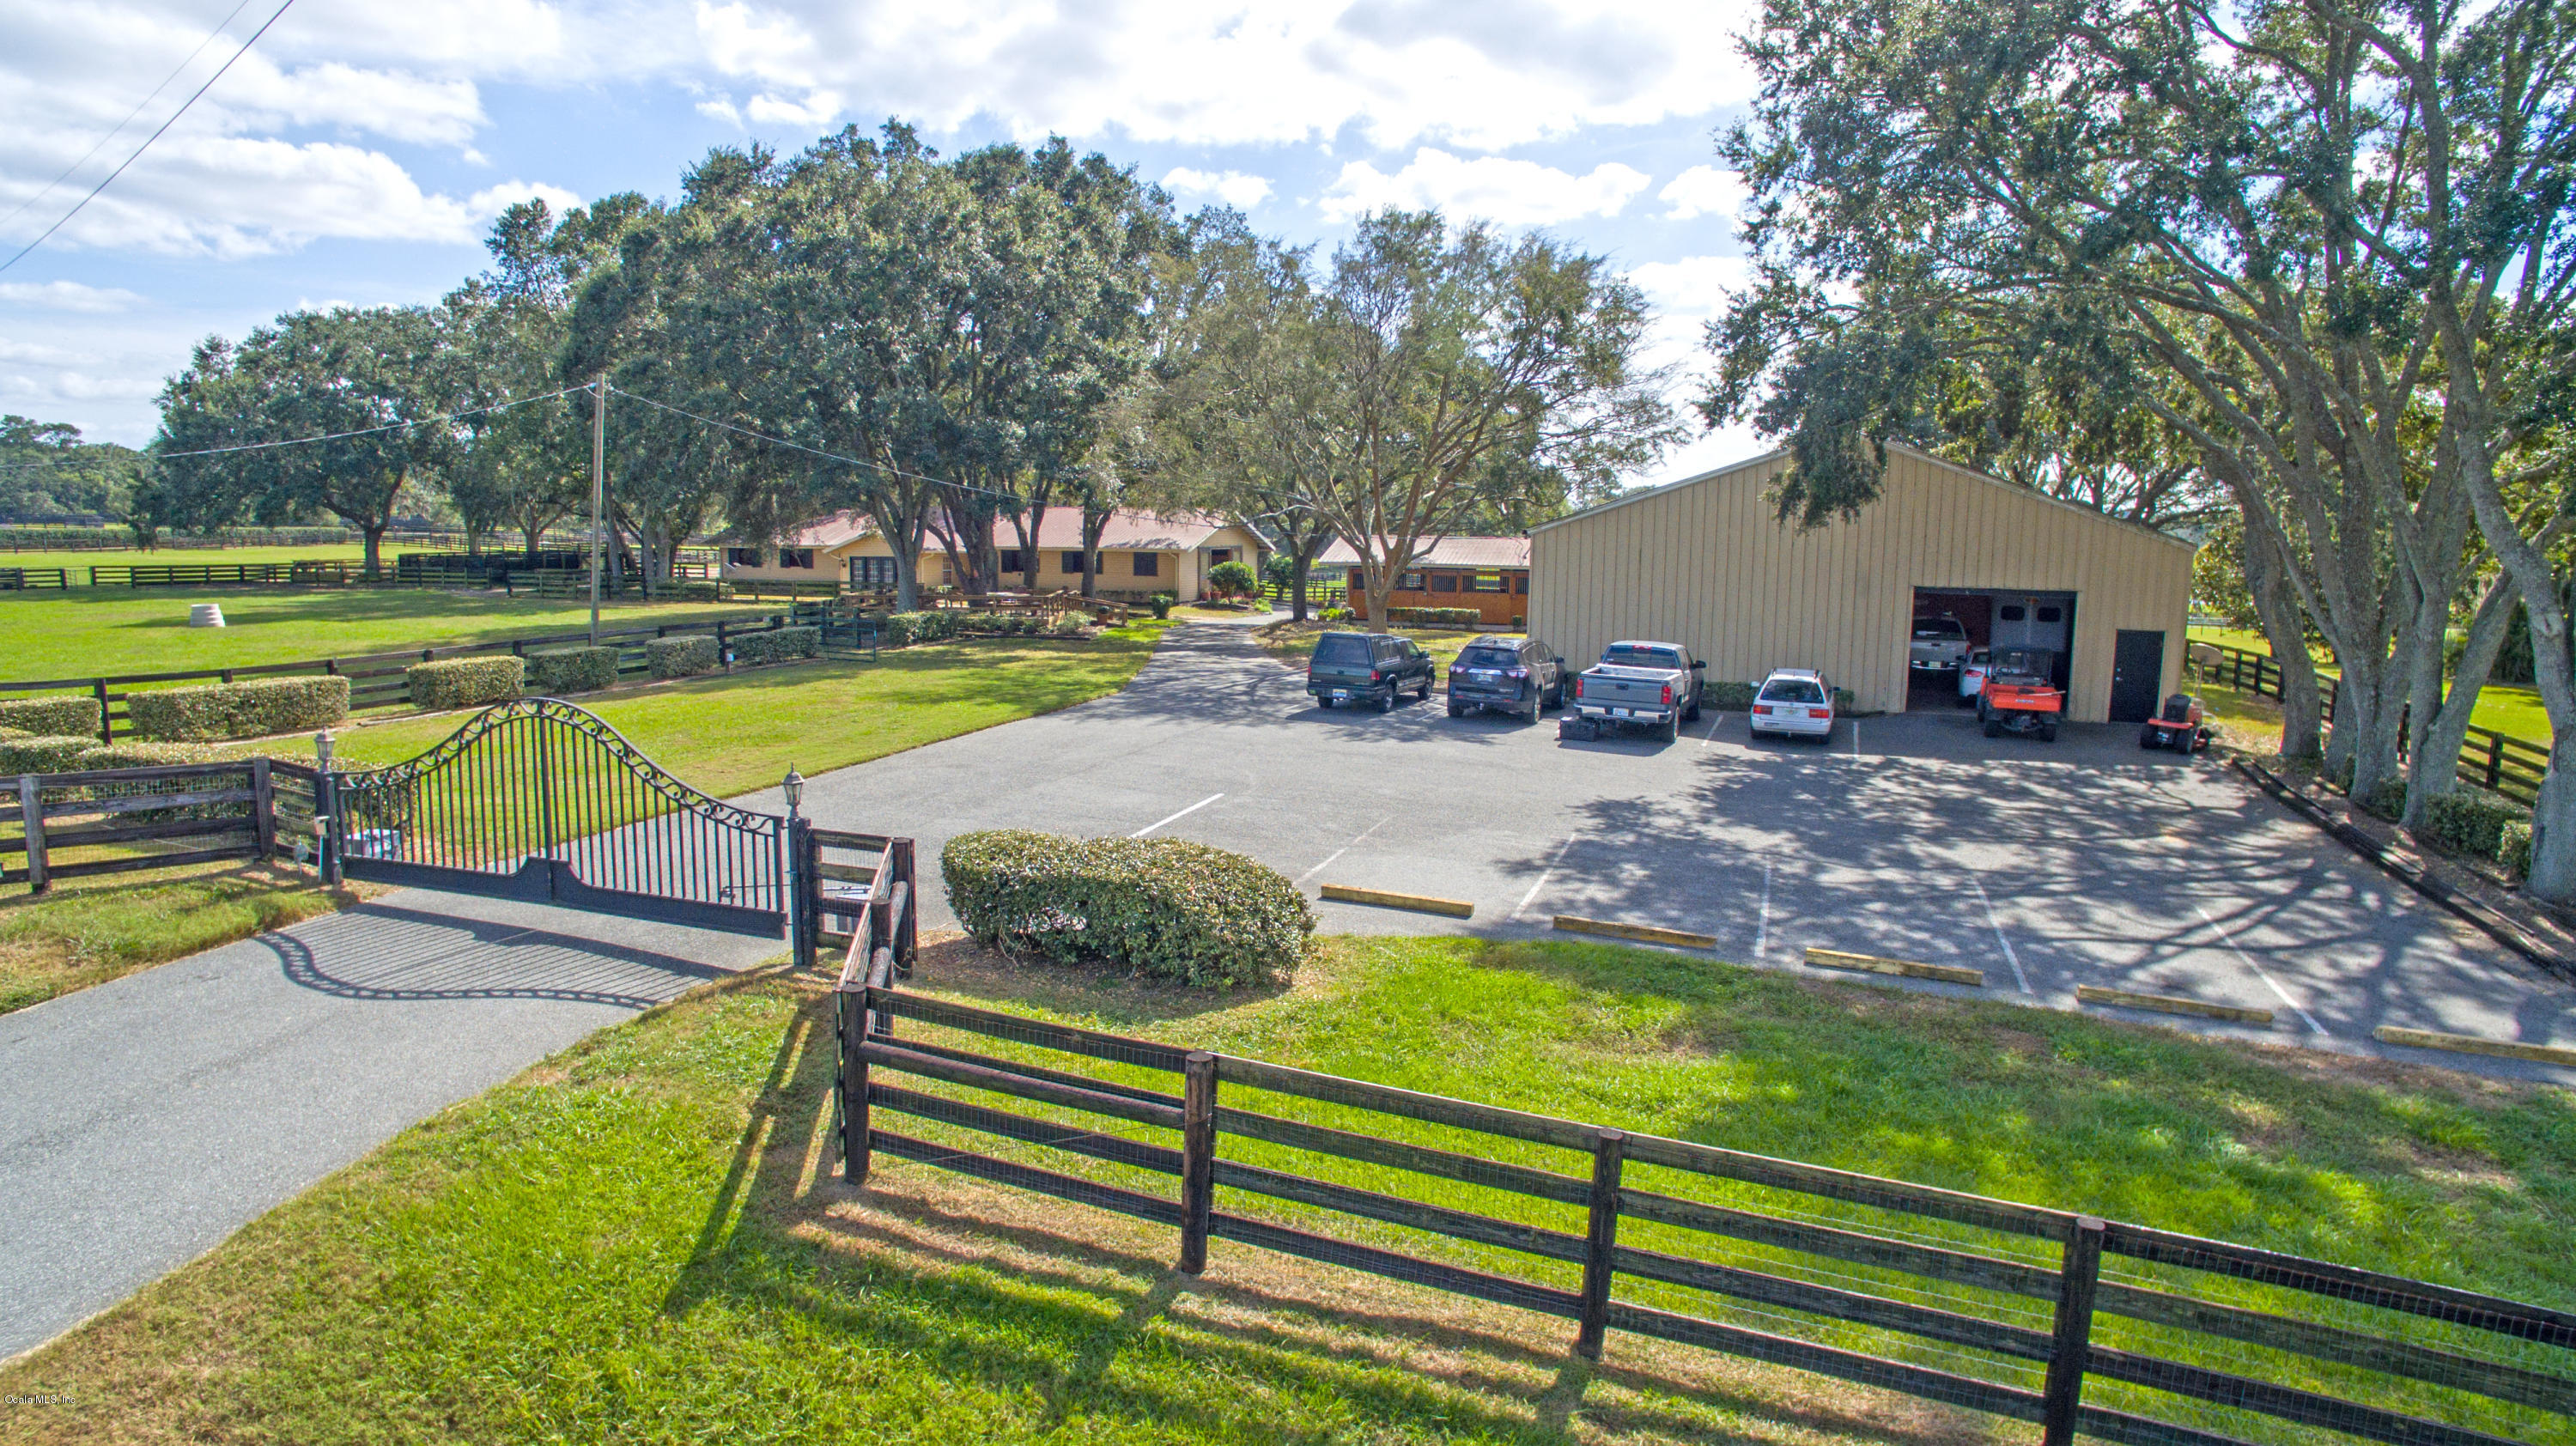 25 Acre Ocala, Florida Horse Farm for Sale #OHP4680 – Ocala